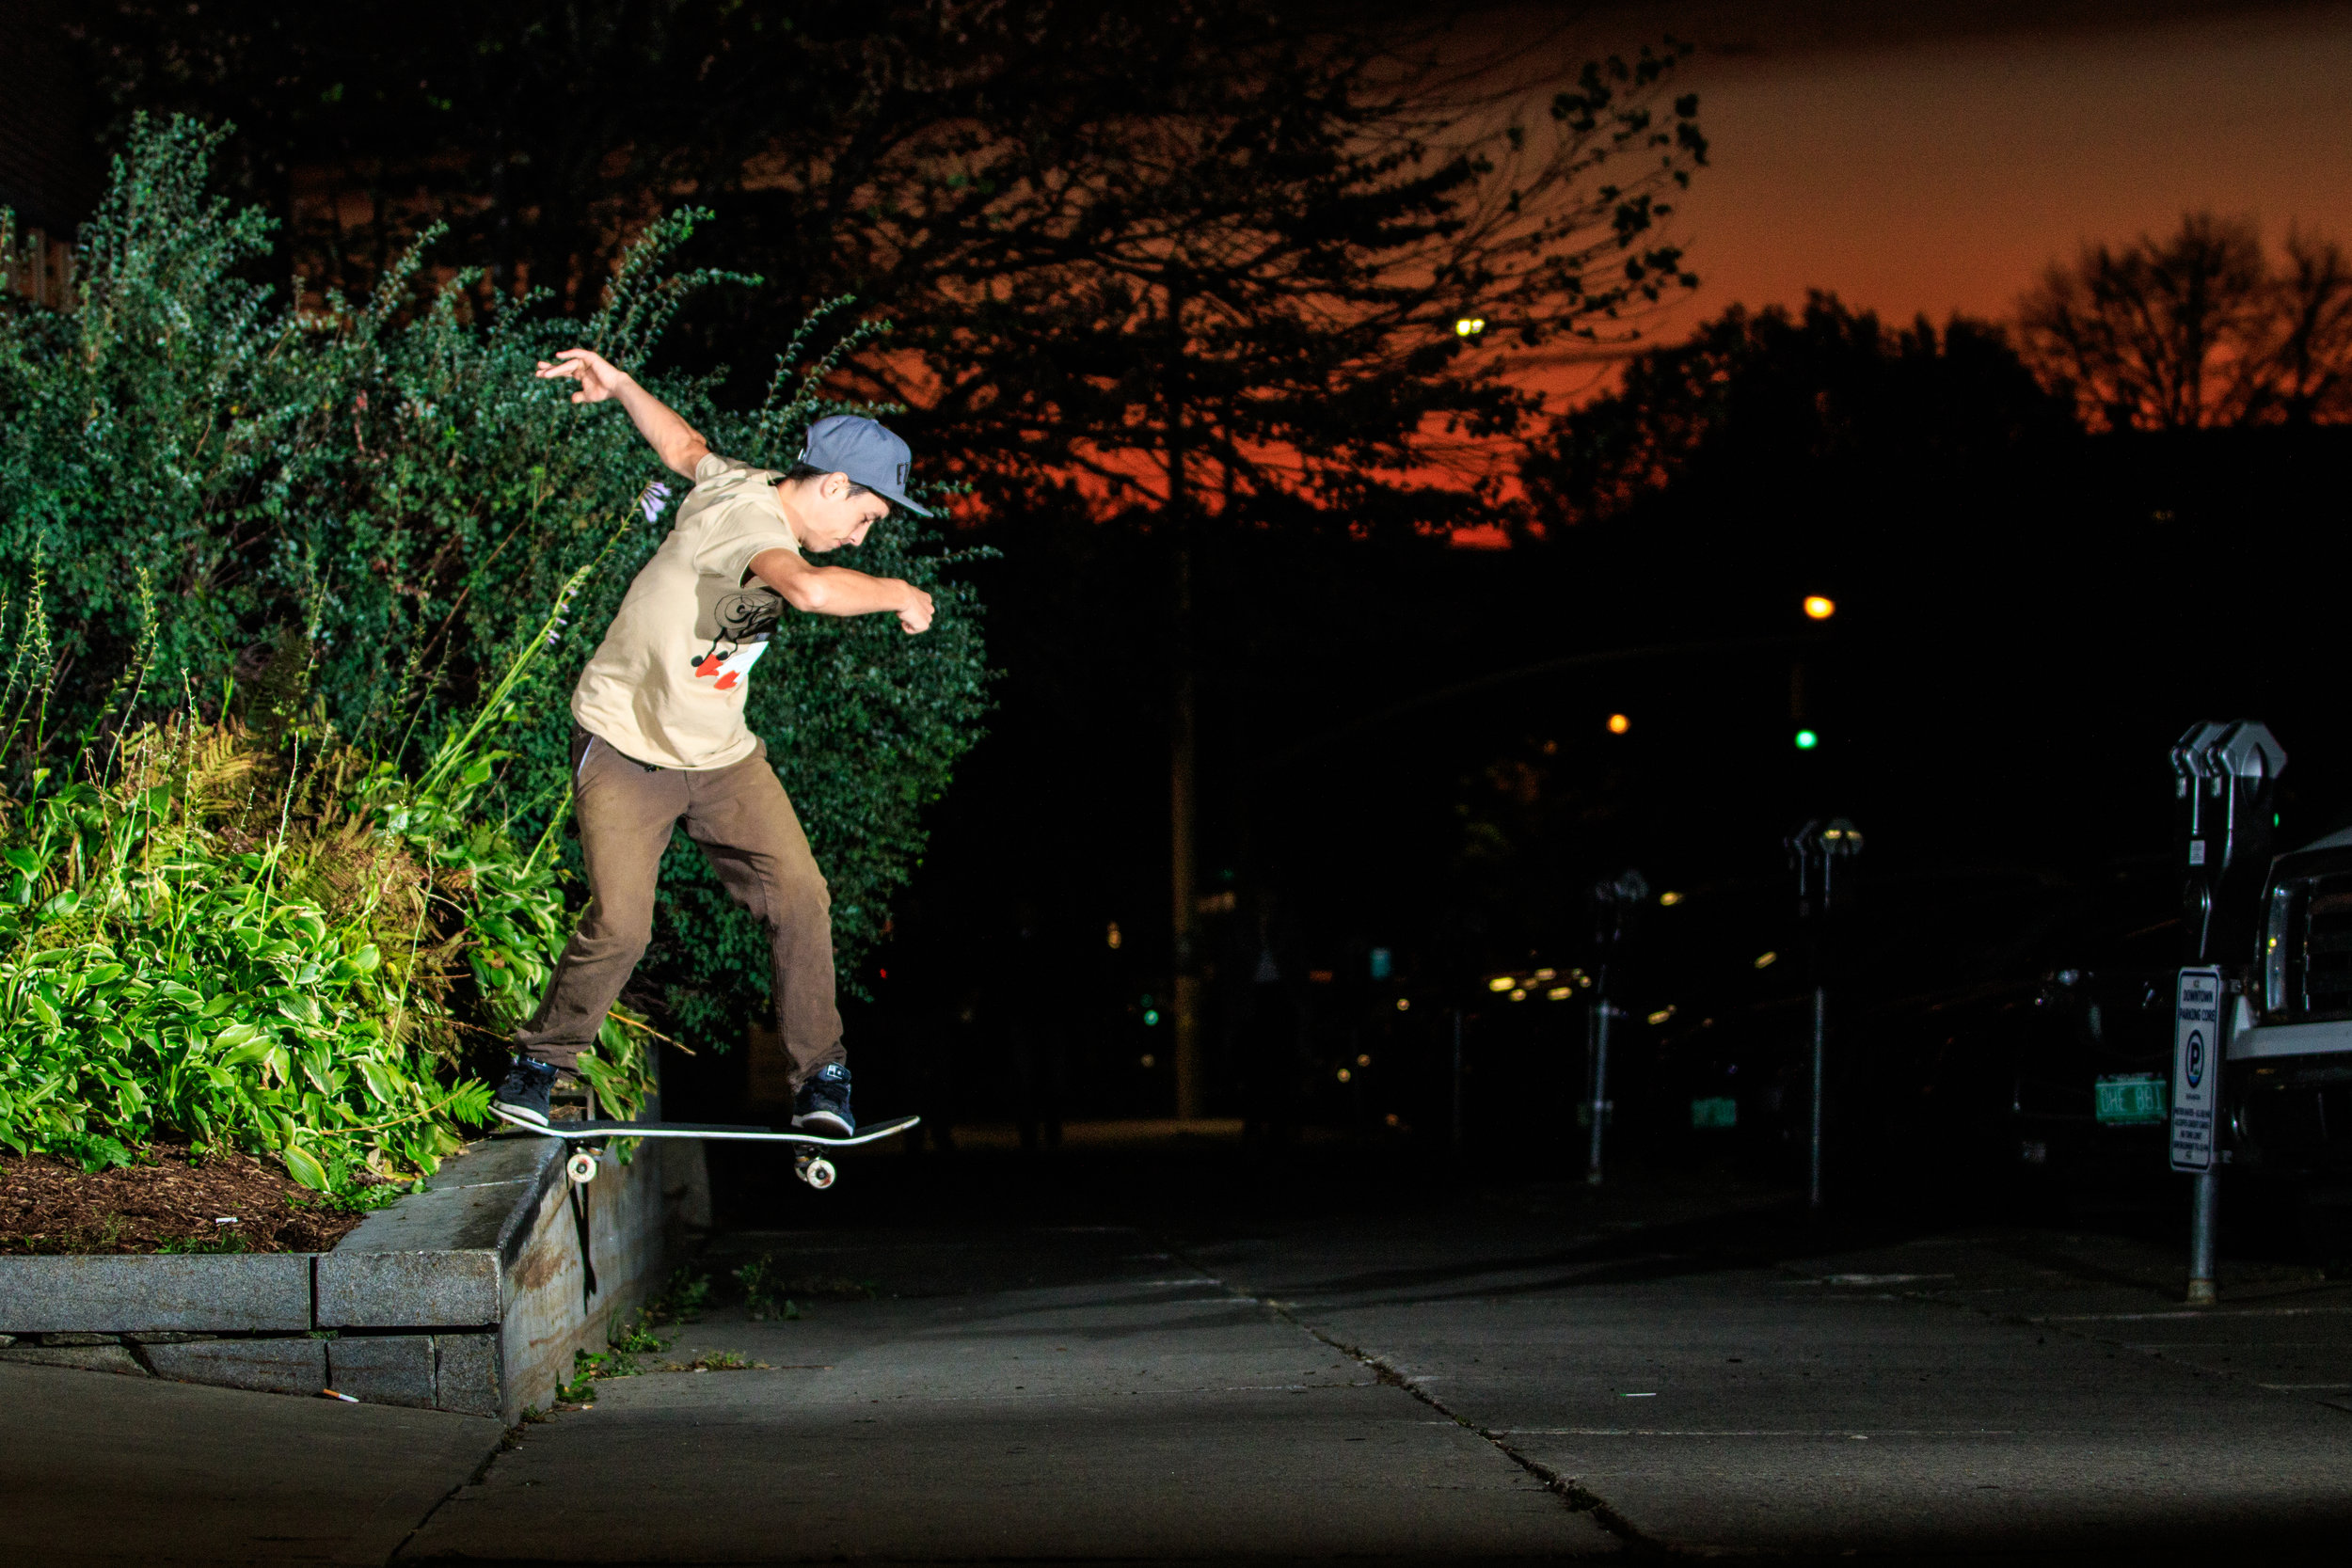 SKATE - The city is our playground.